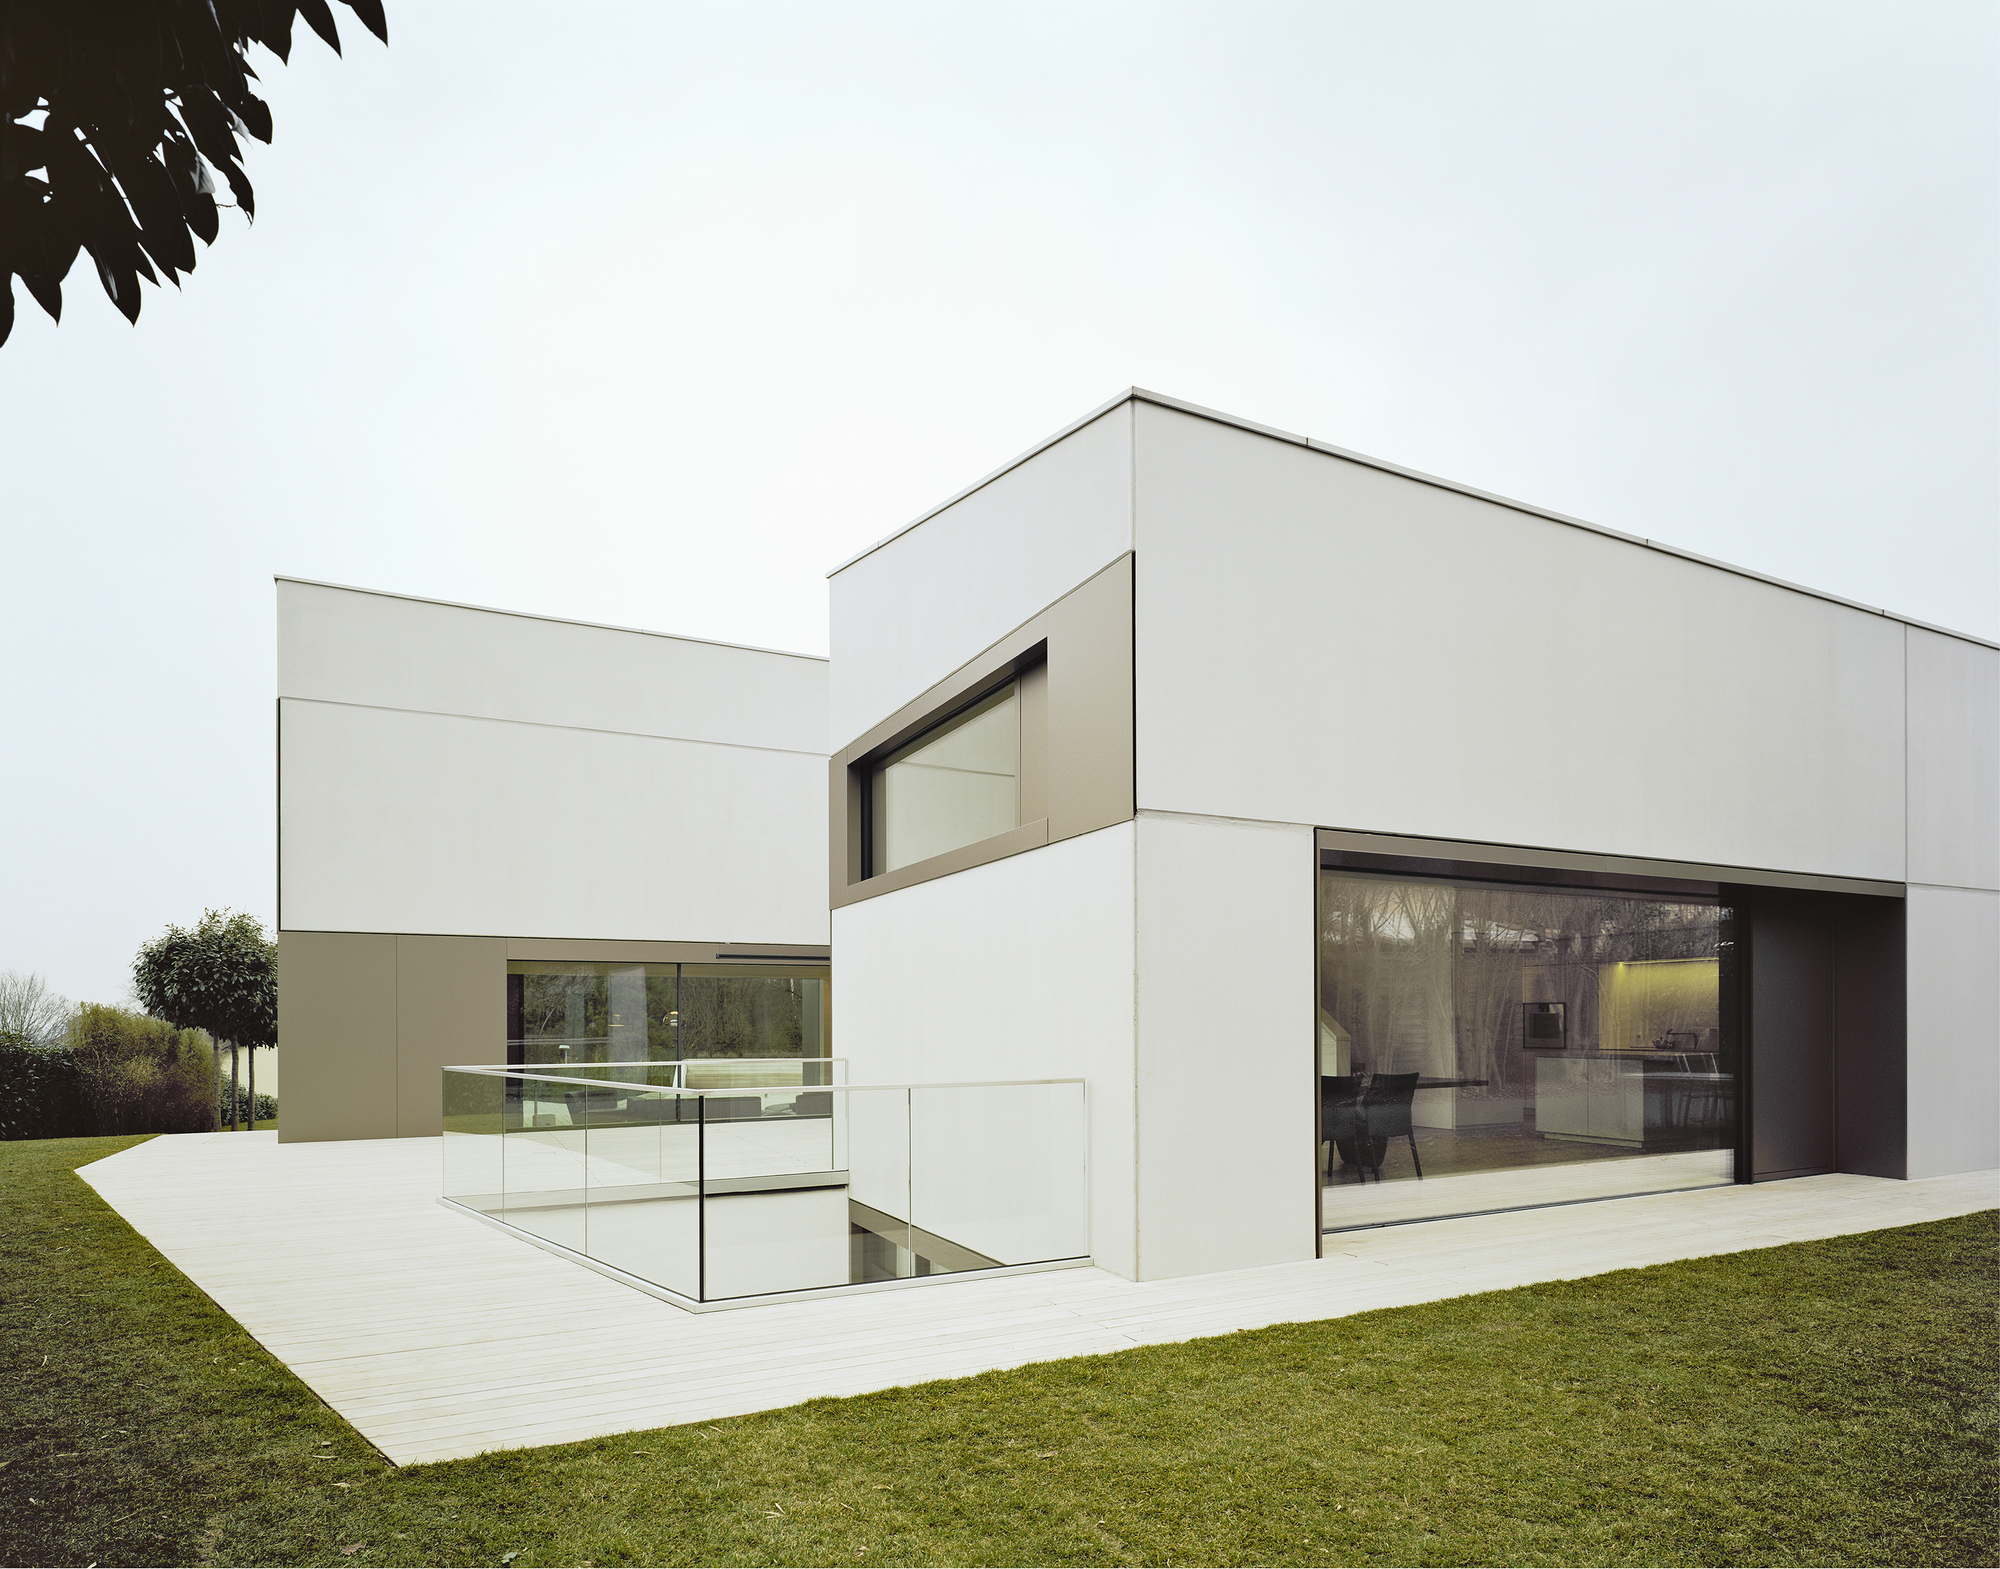 Gallery of city villa s3 steimle architekten 13 for Imagenes de arquitectura minimalista